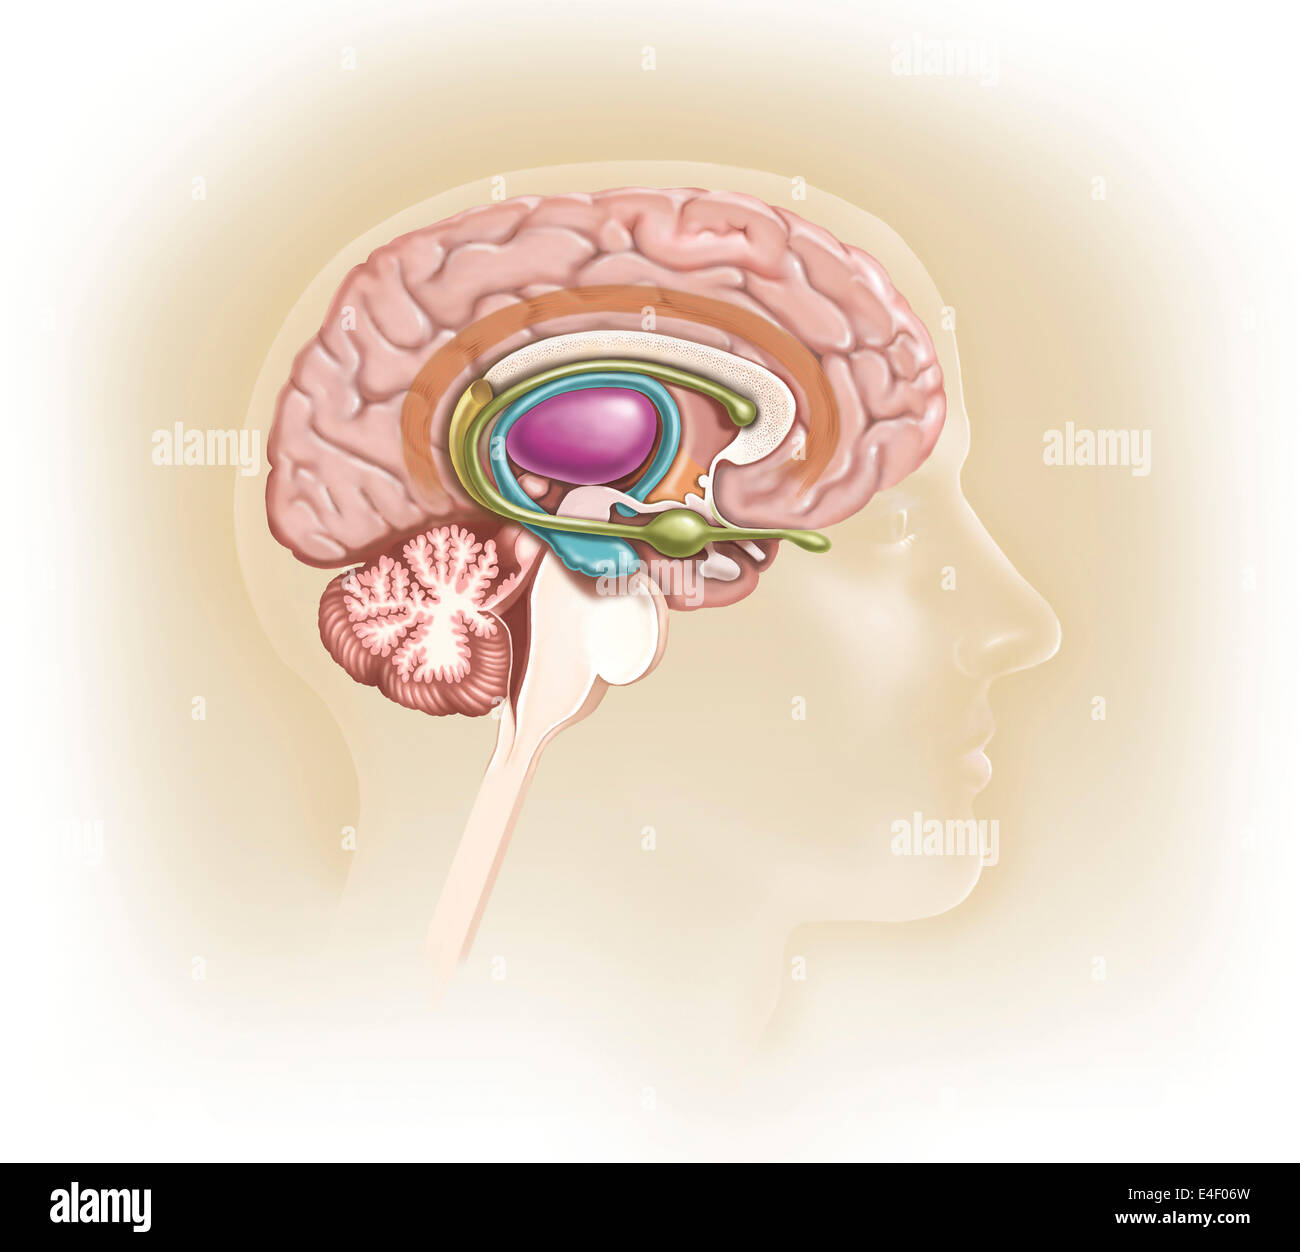 Sagittal View Of Human Brain Showing The Limbic System ...